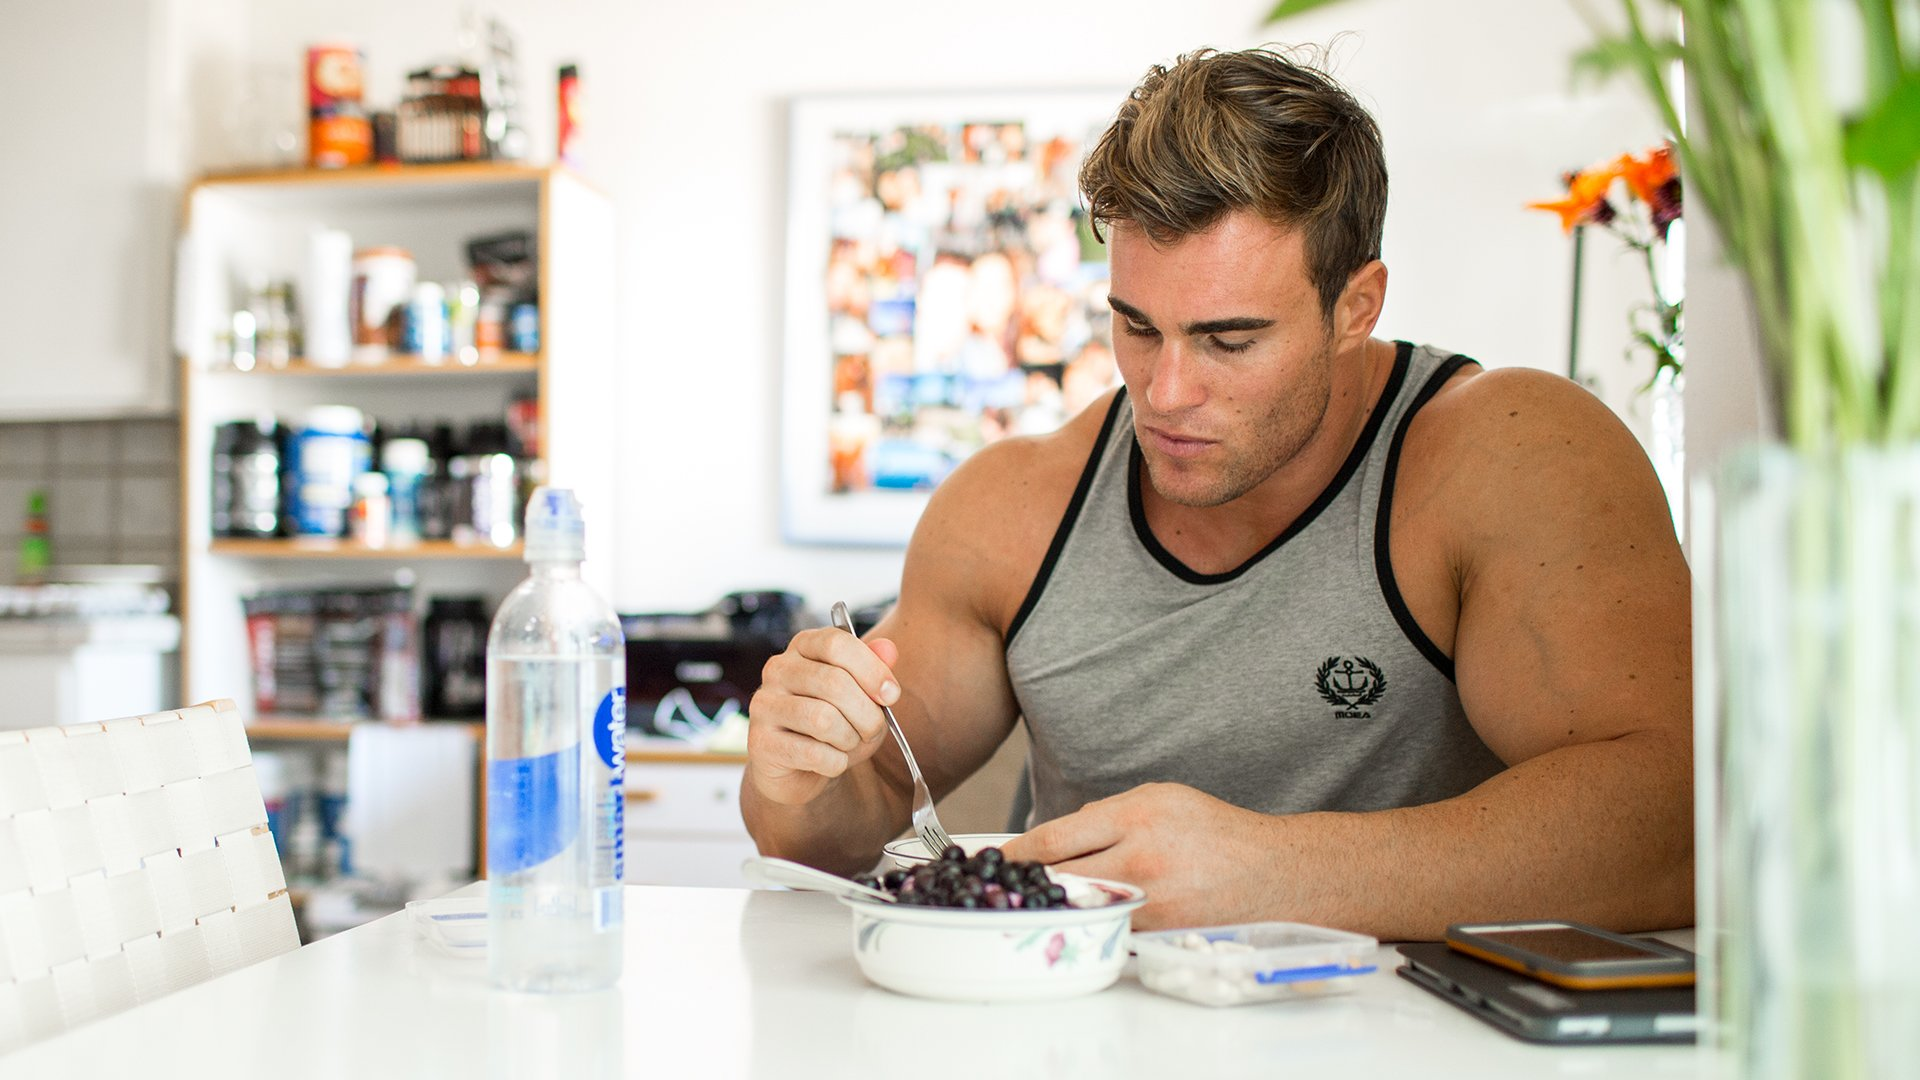 Illa Post Workout: Eat For Anabolism: Pre- And Post-Workout Nutrition For